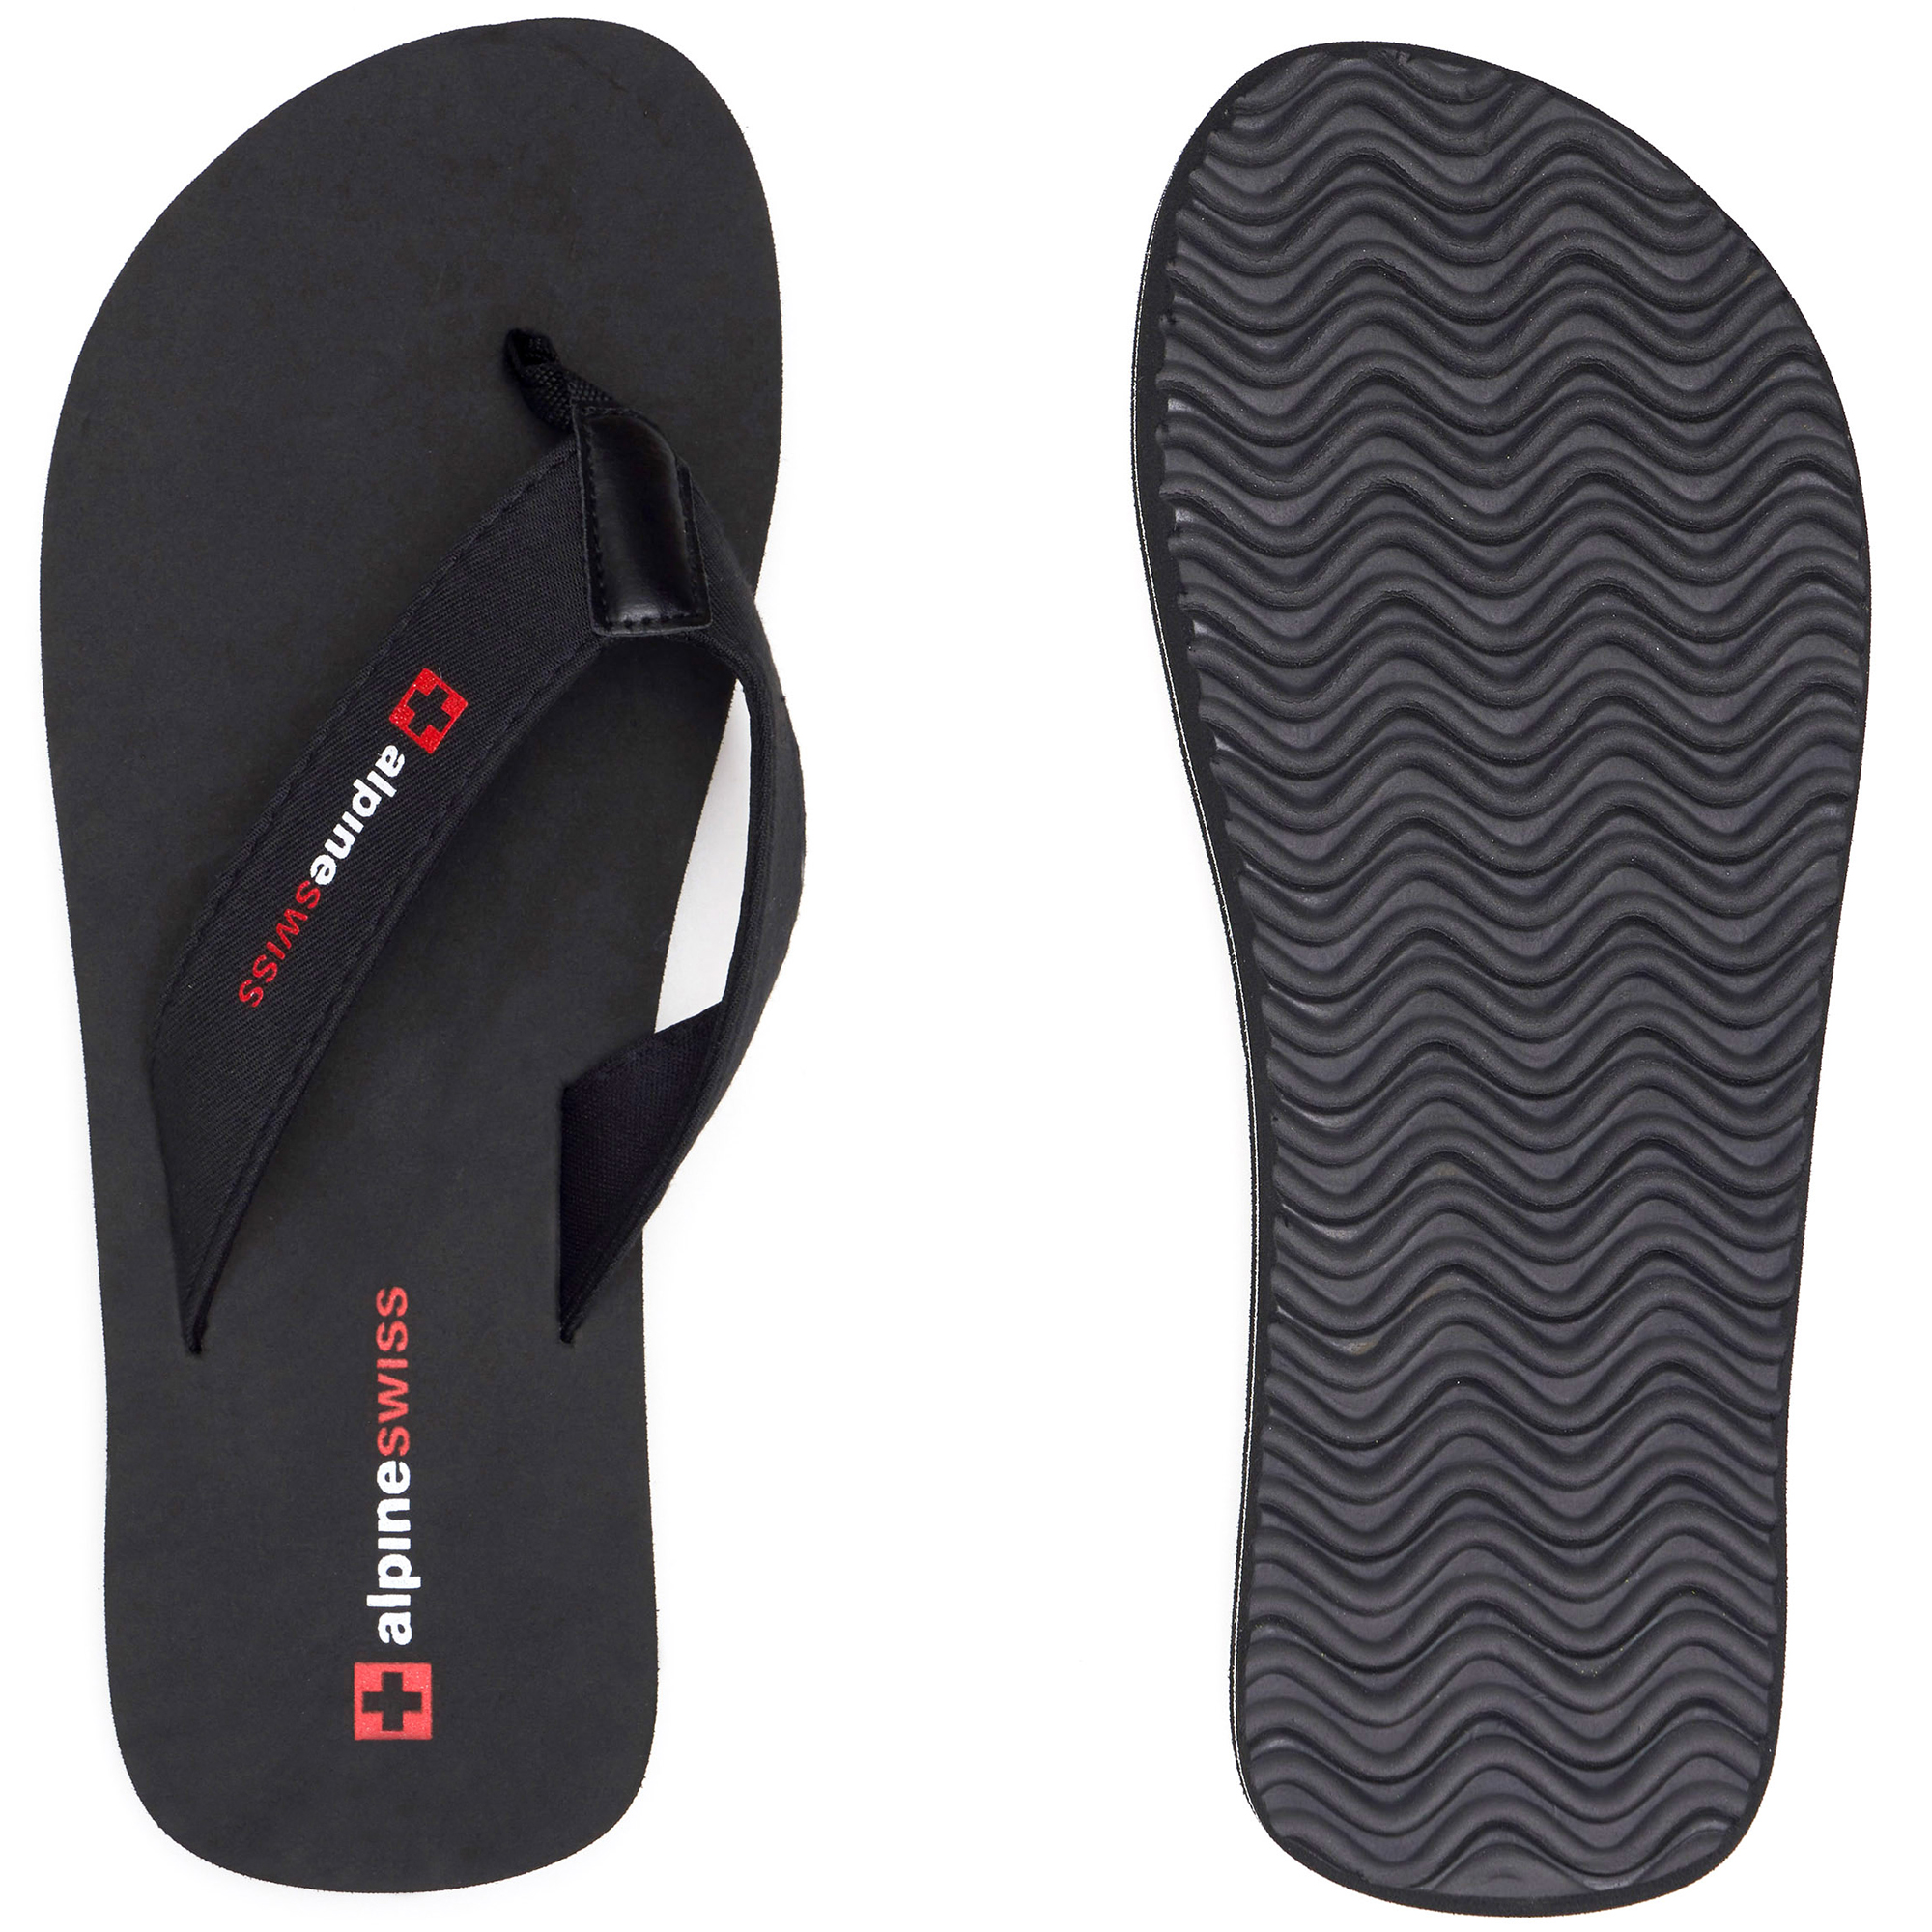 Alpine-Swiss-Mens-Flip-Flops-Beach-Sandals-Lightweight-EVA-Sole-Comfort-Thongs thumbnail 56